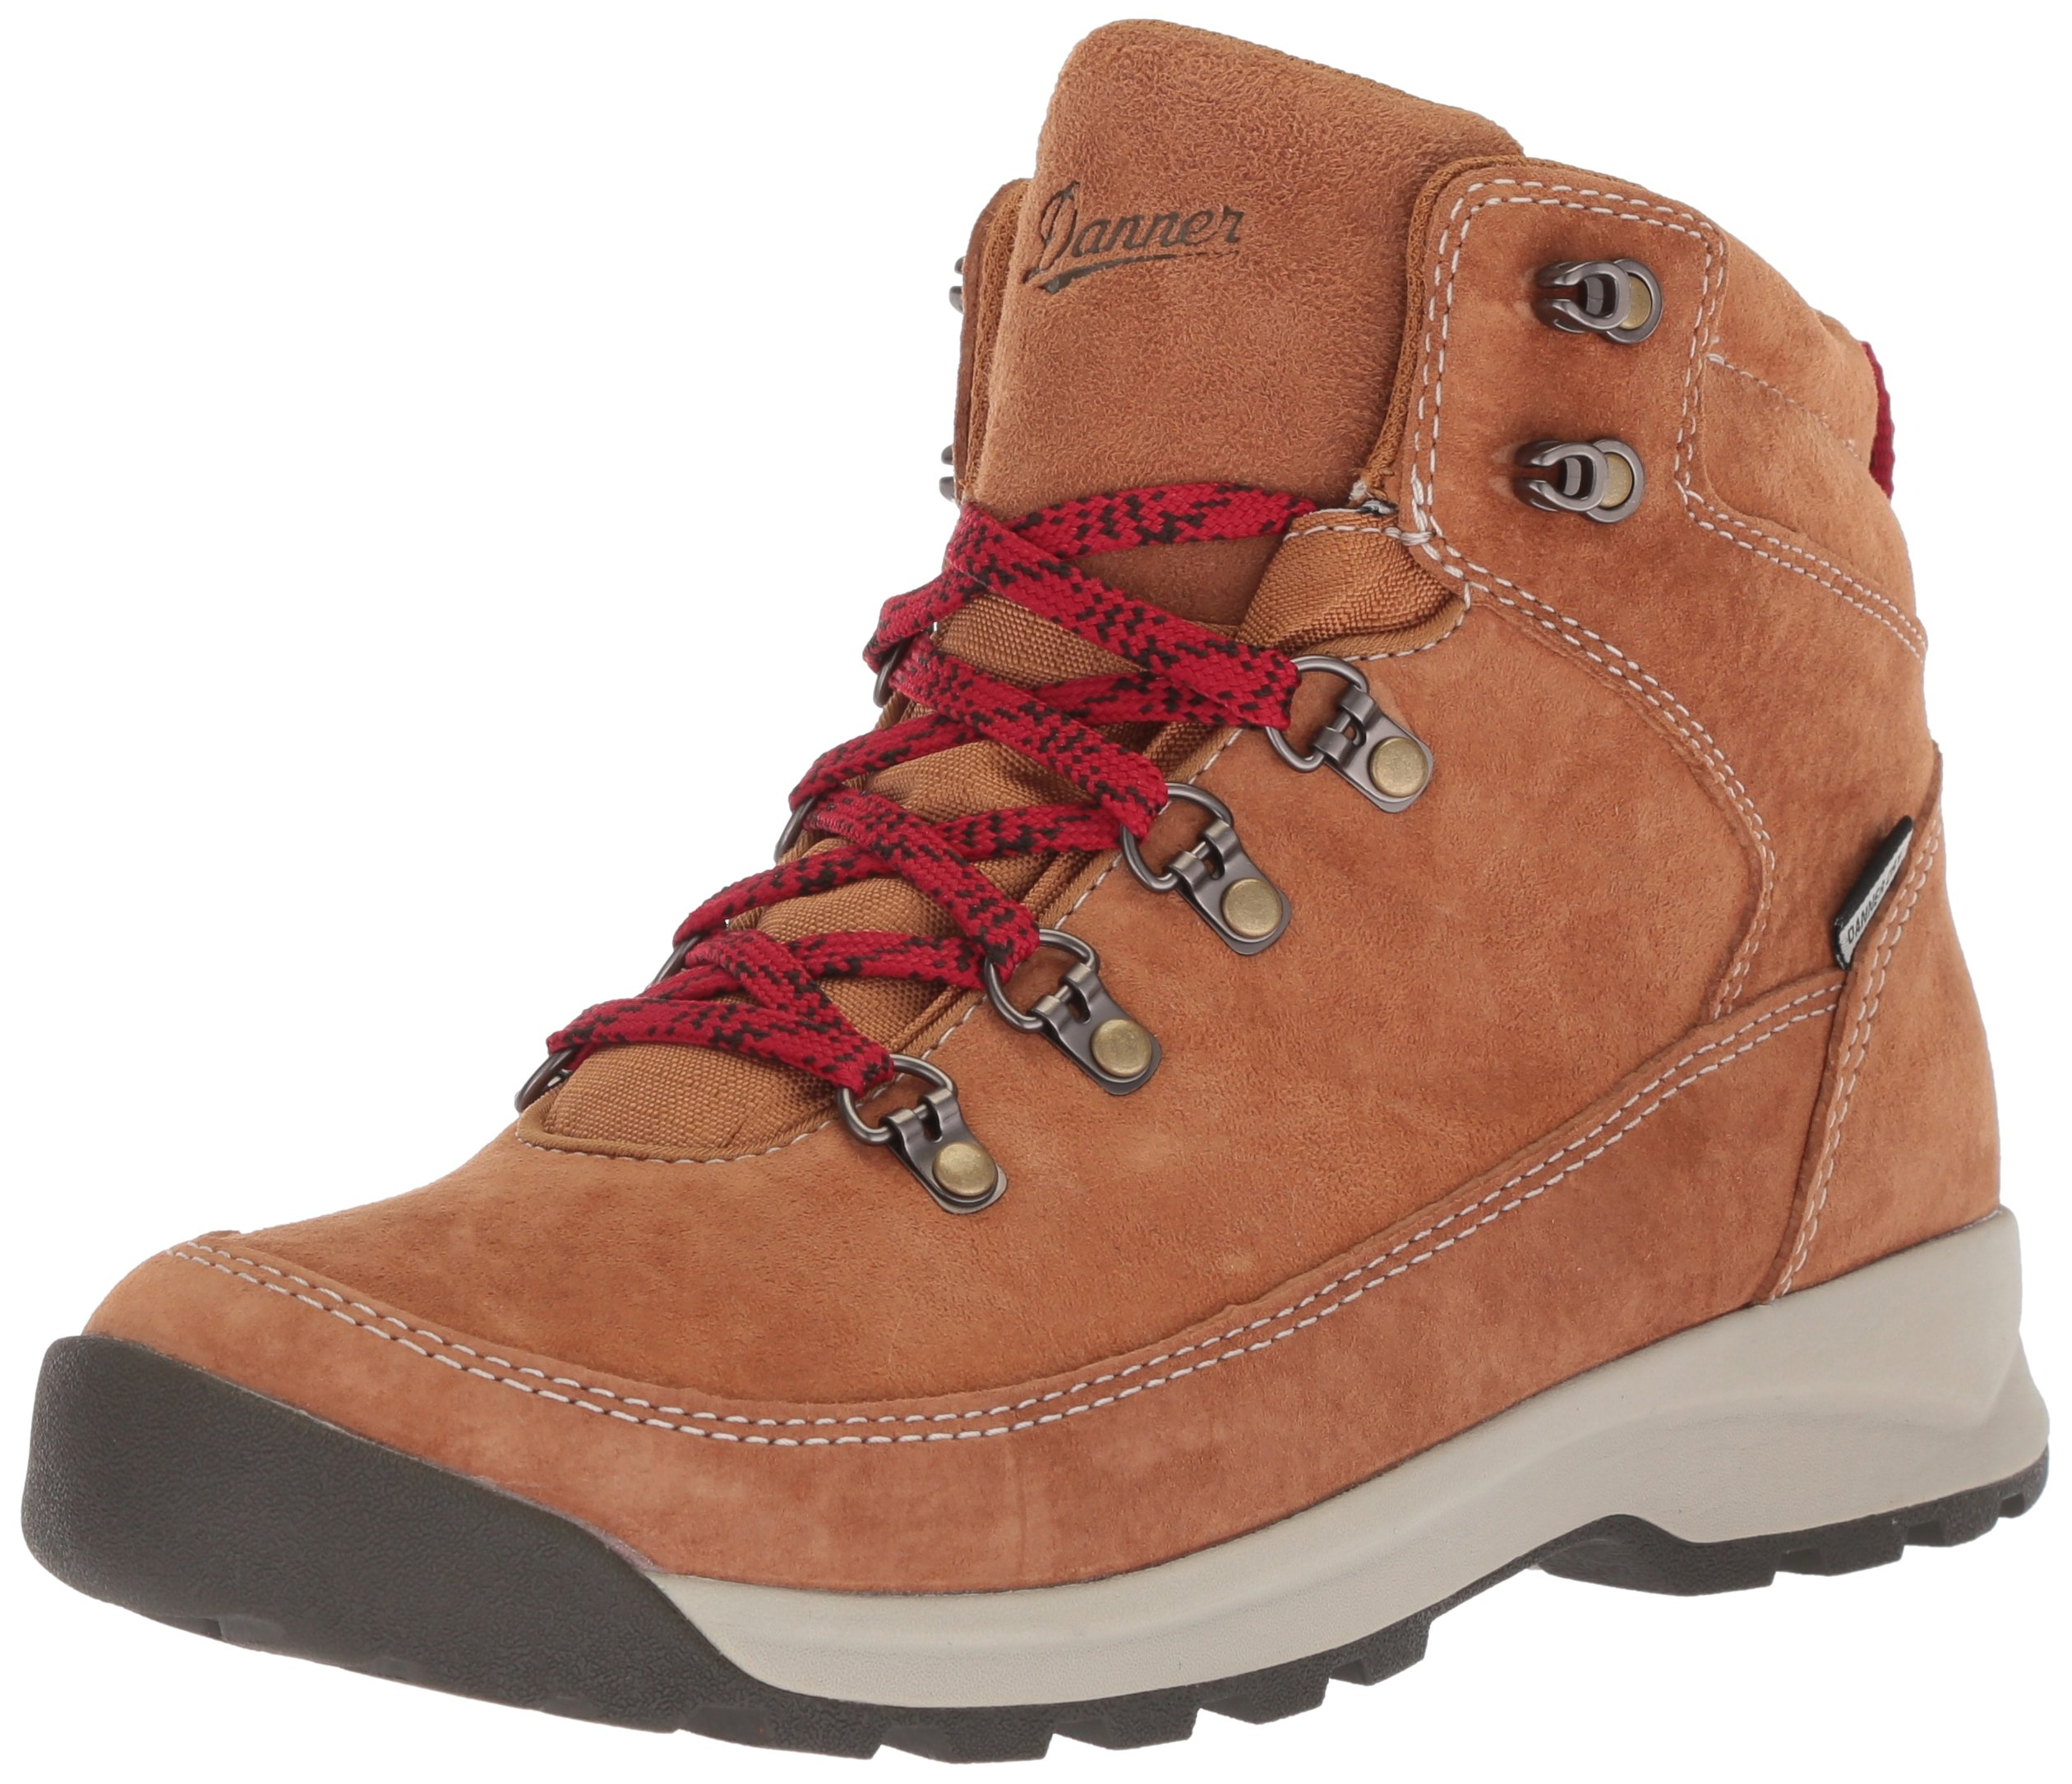 Danner Women's Adrika Hiker Hiking Boot, Sienna, 8.5 M US by Danner